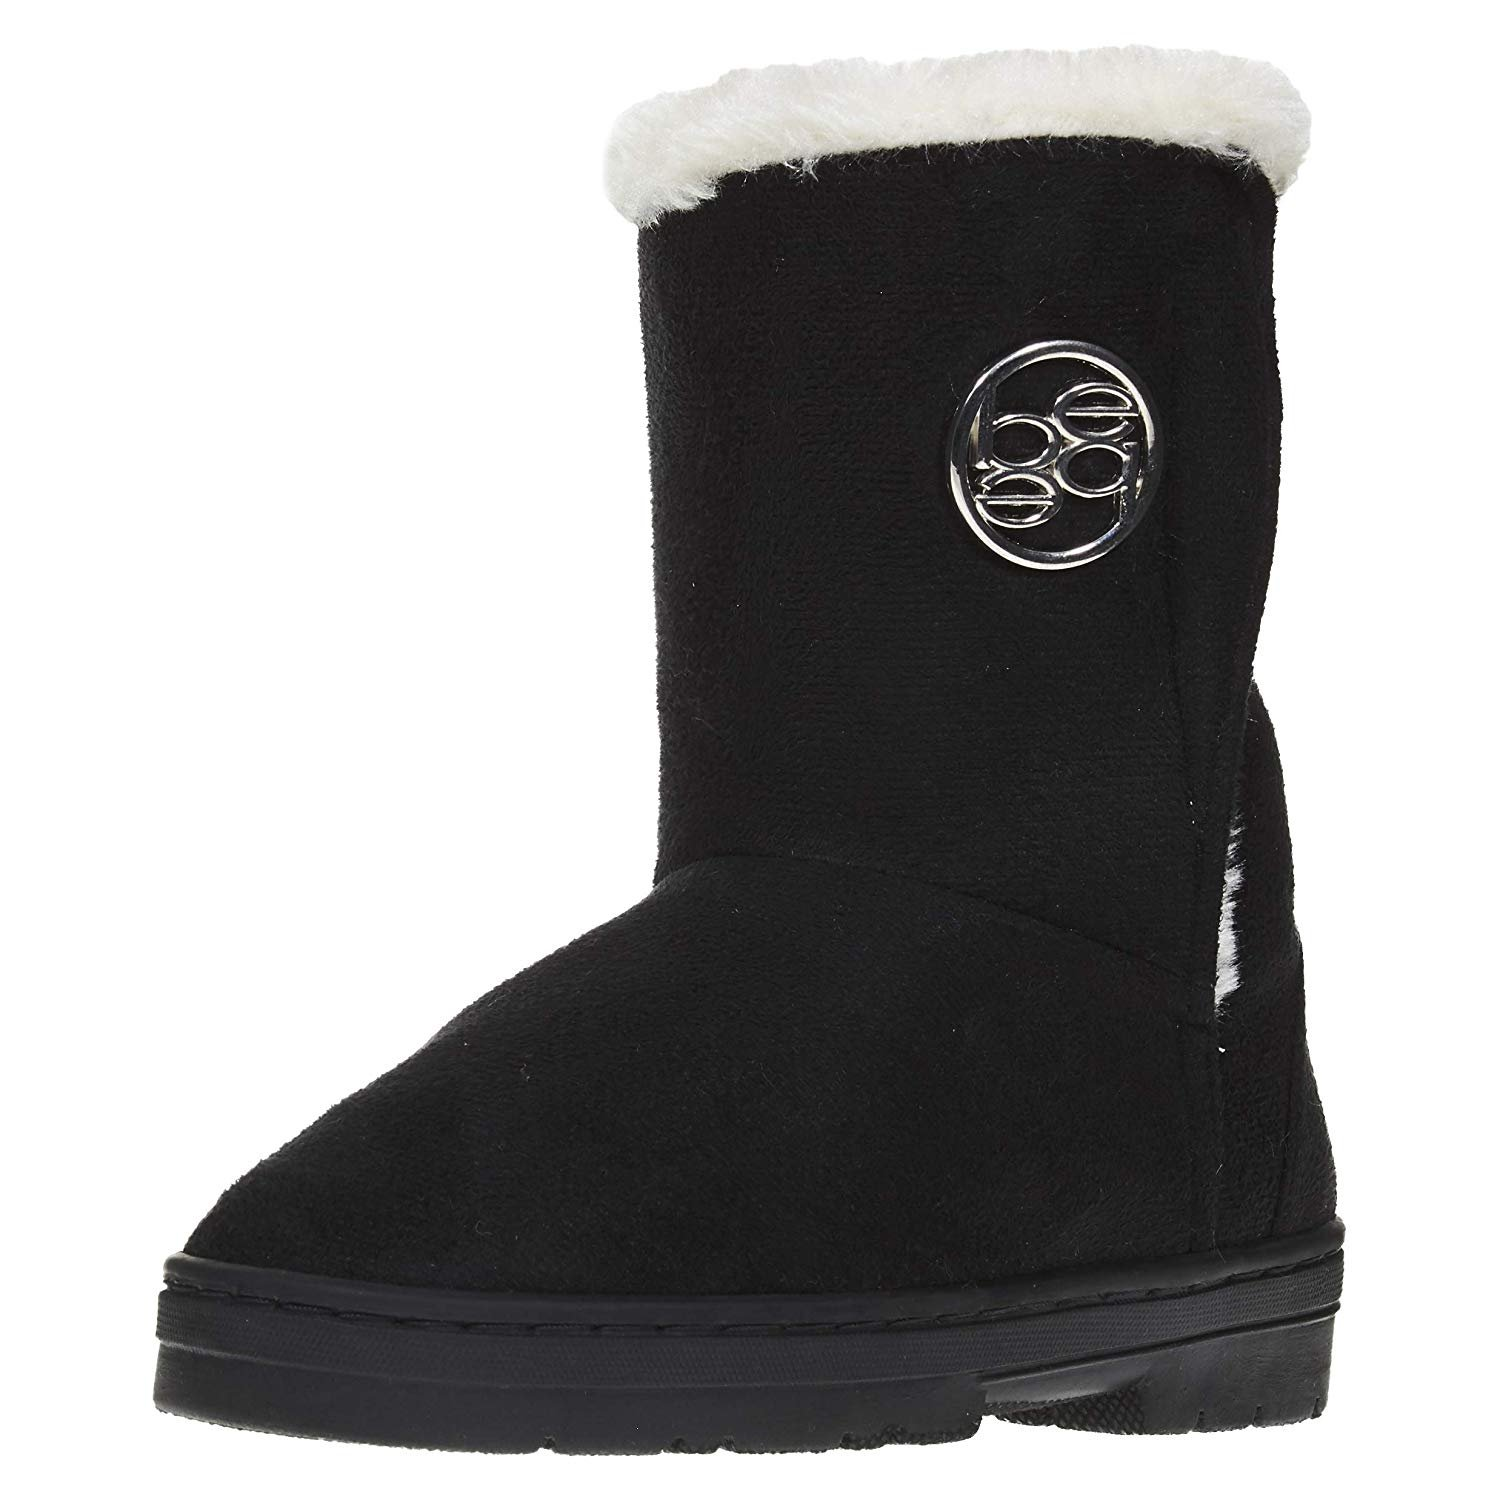 11, Black Fashion Simple Kids Shoes Cute Slip-on Girls Youth Faux Fur Interior Winter Snow Boots New Without Box